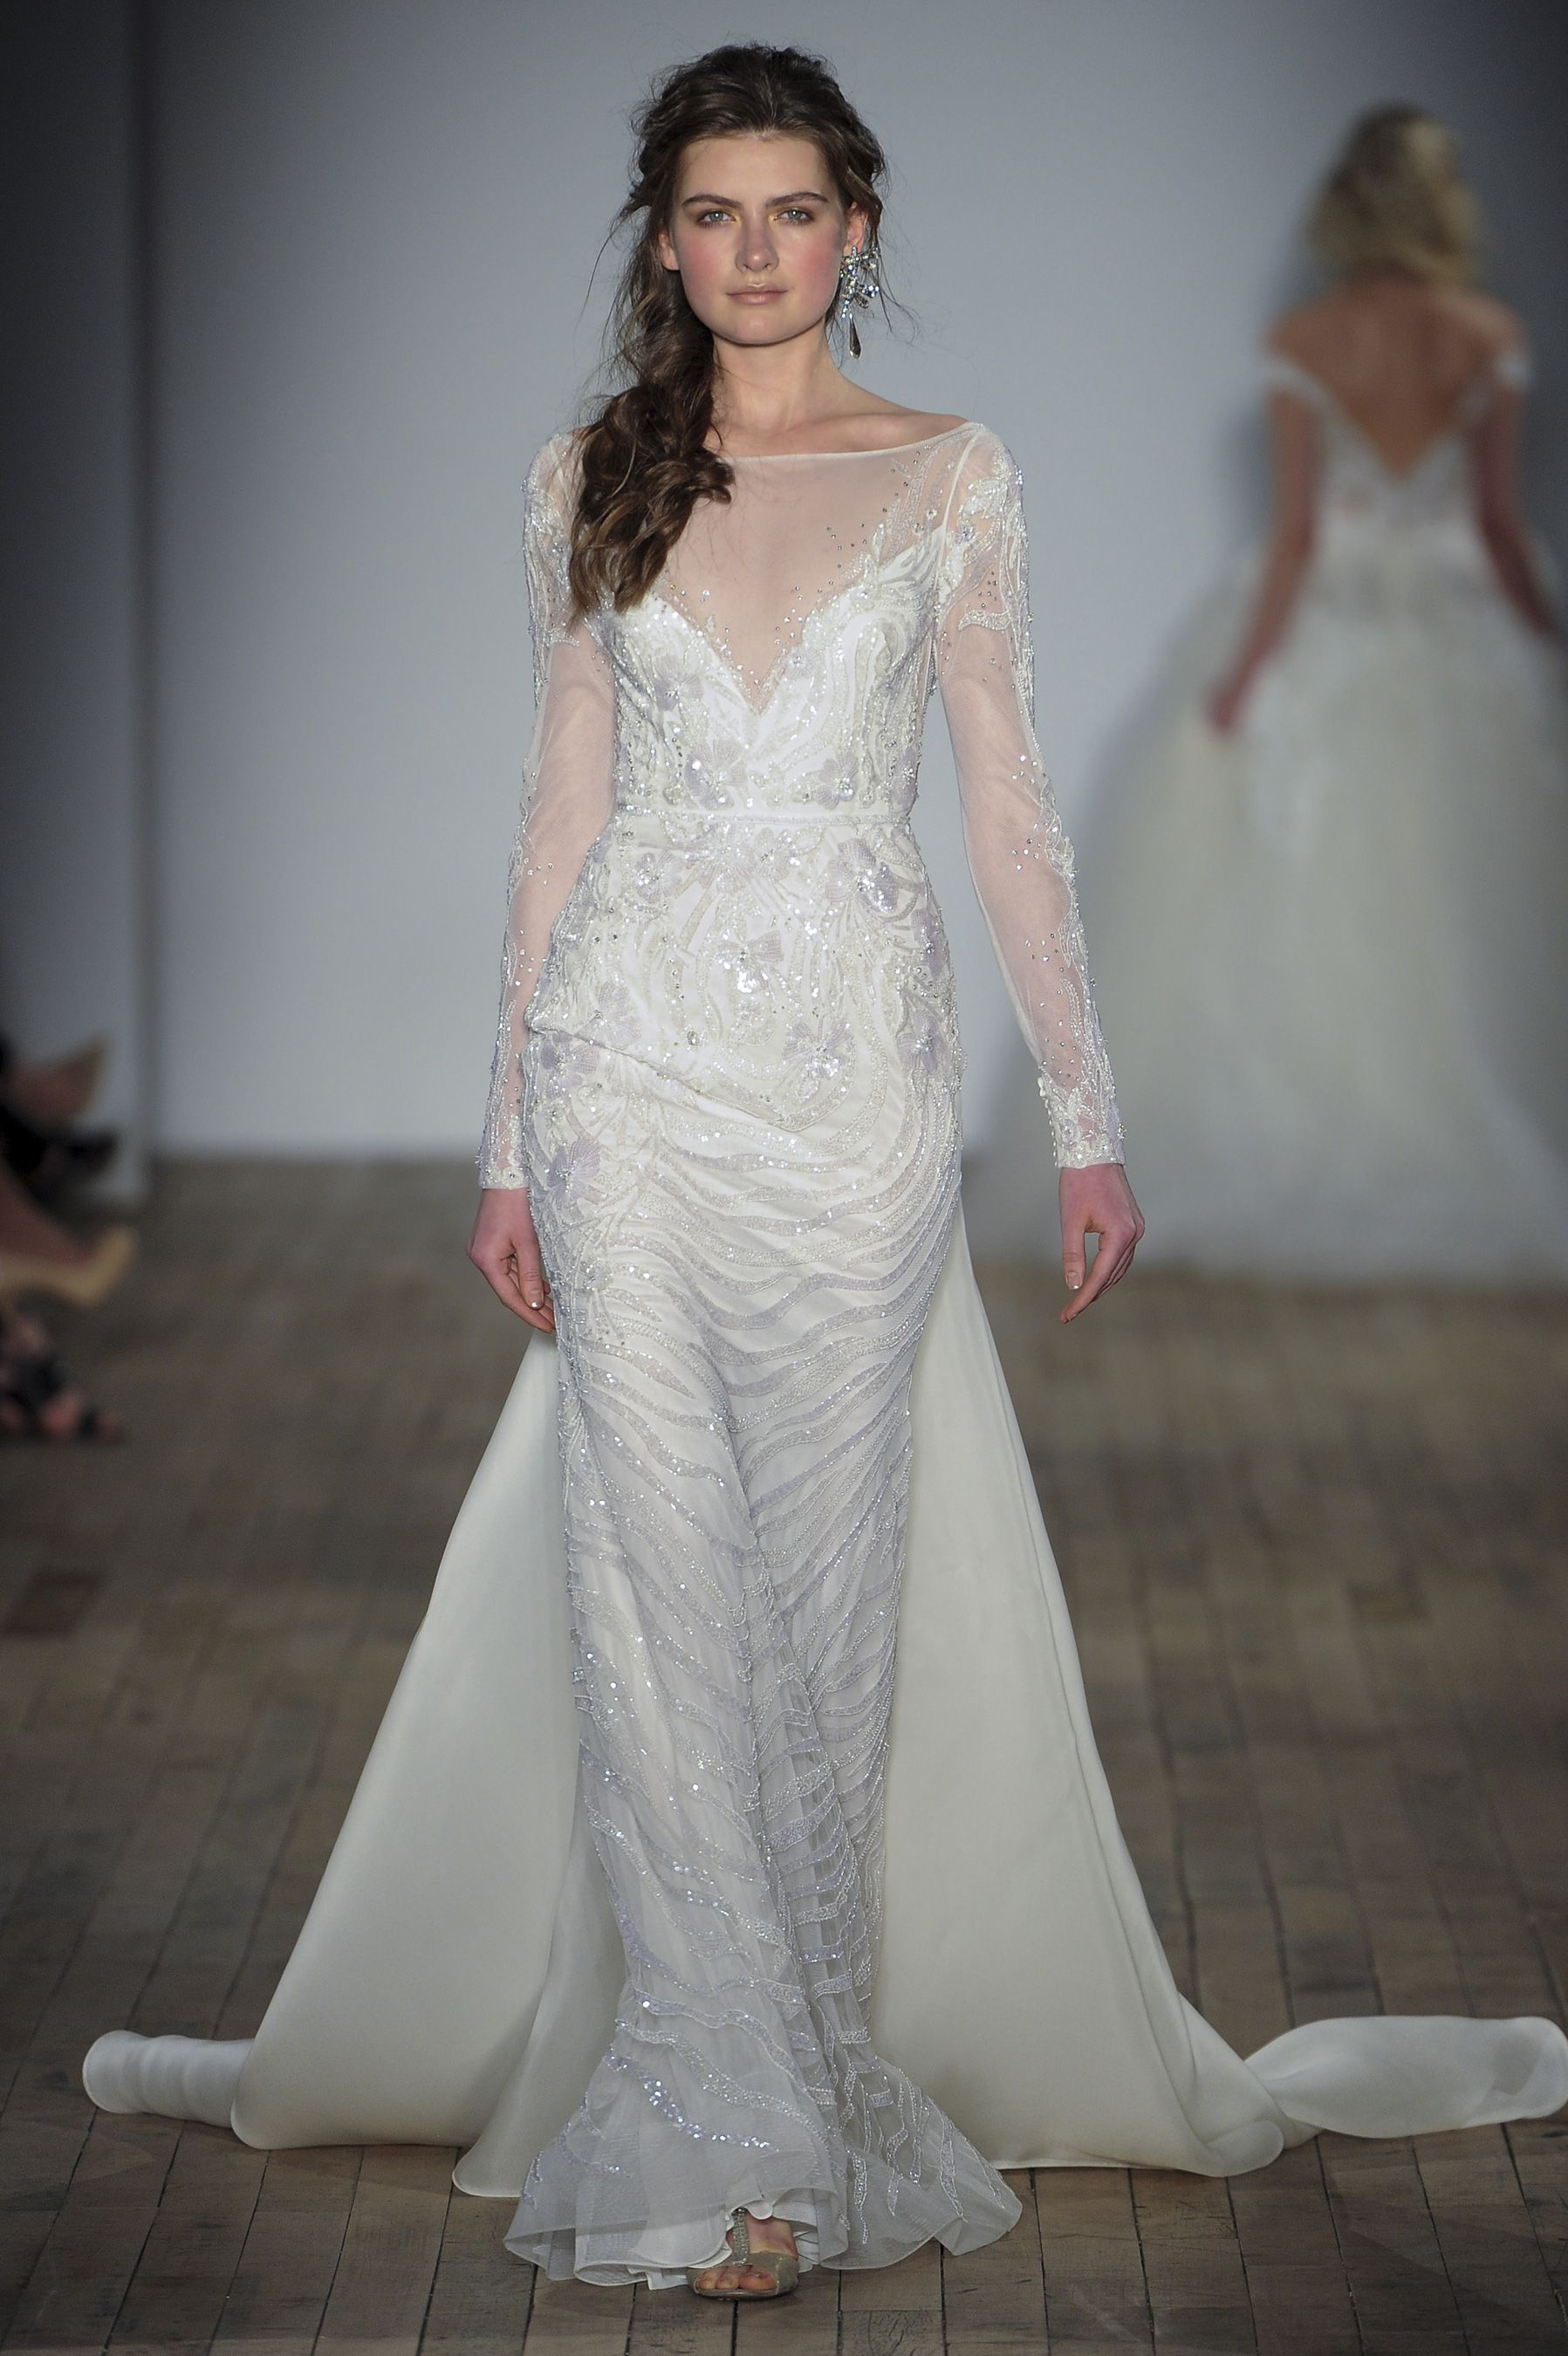 Jlm couture spring 2018 bridal fashion show the